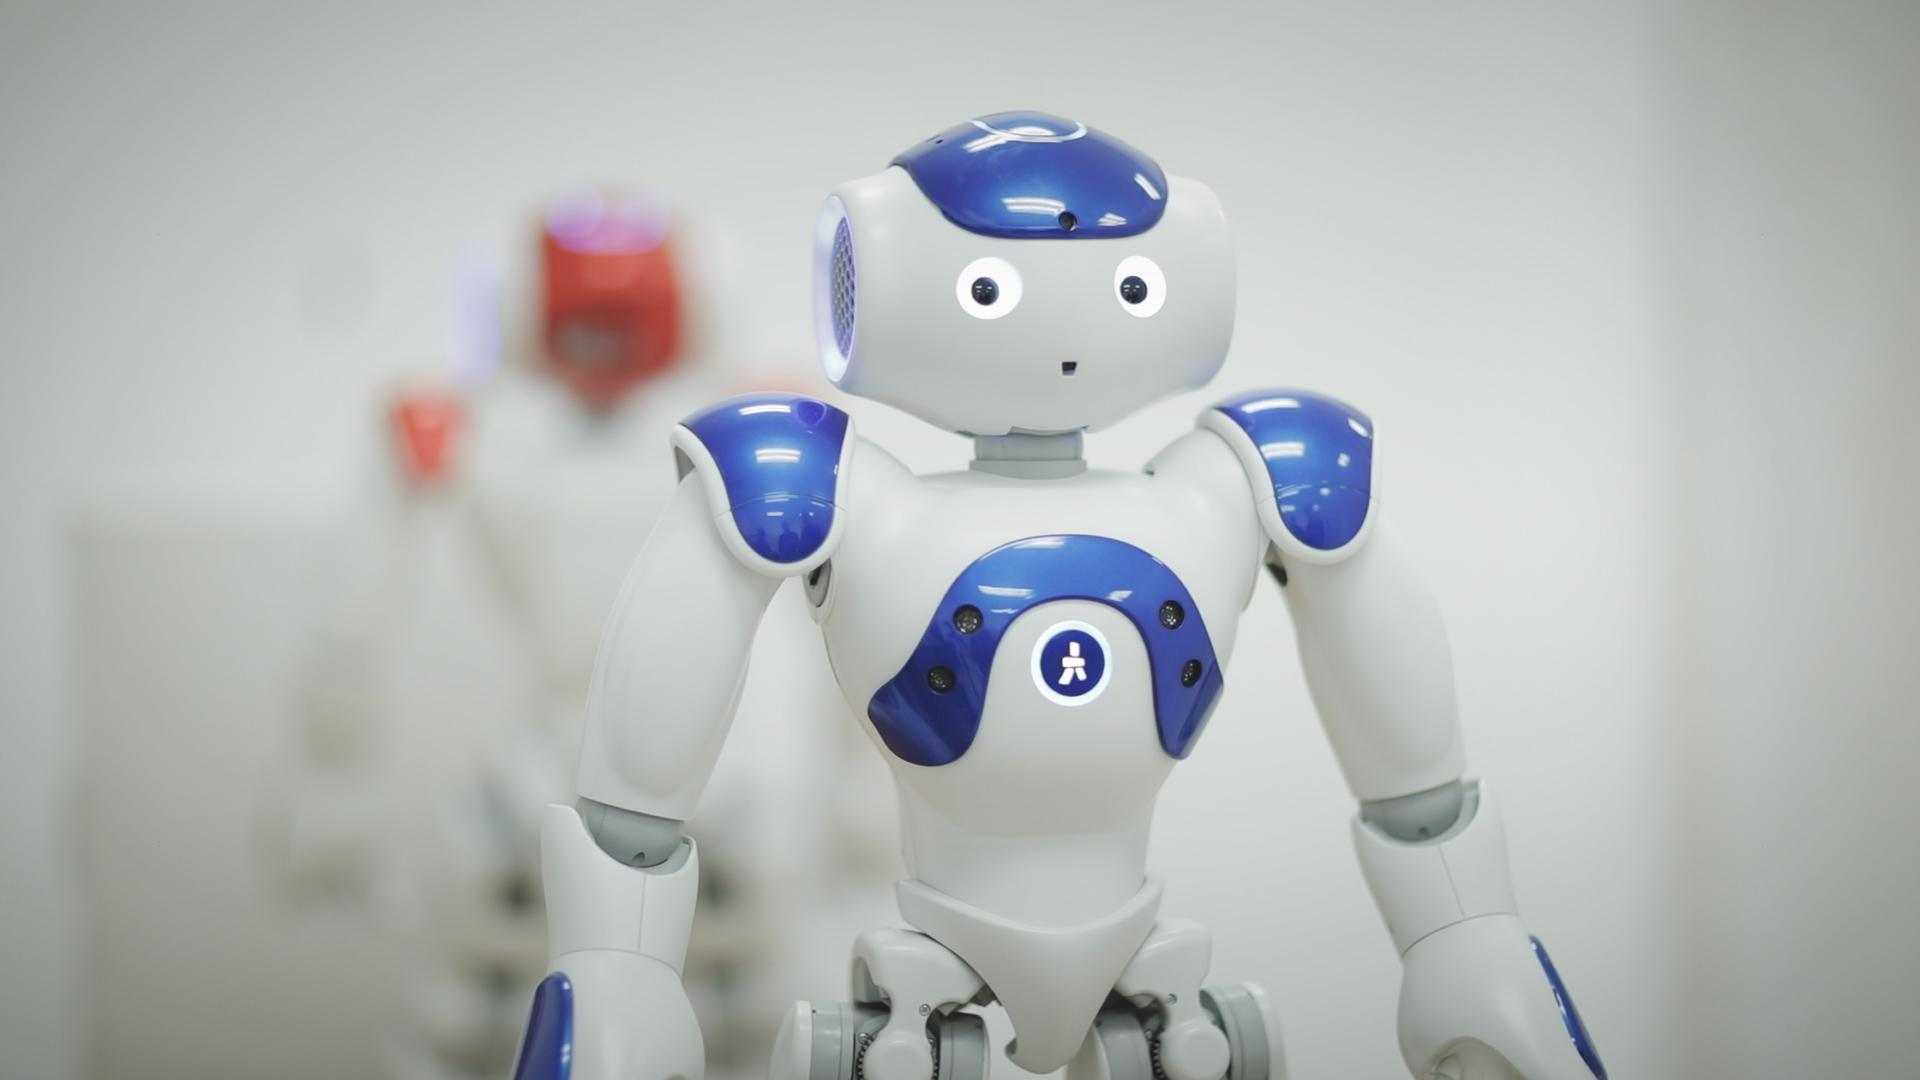 Teaching robots to trust